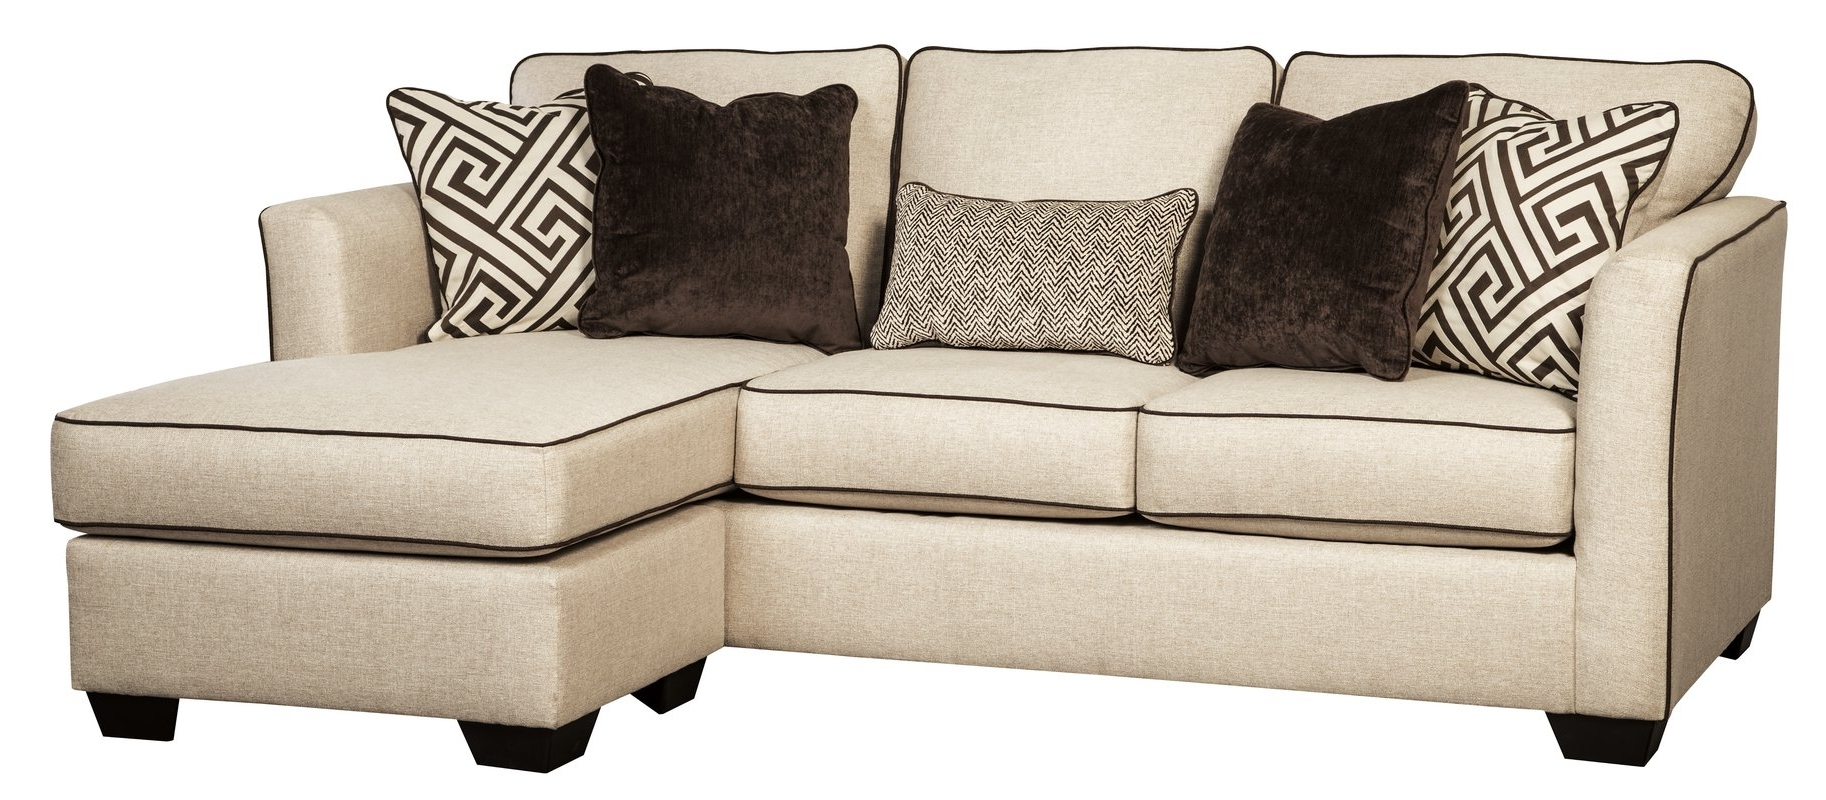 Wayfair Pertaining To Chaise Sofas (View 14 of 15)